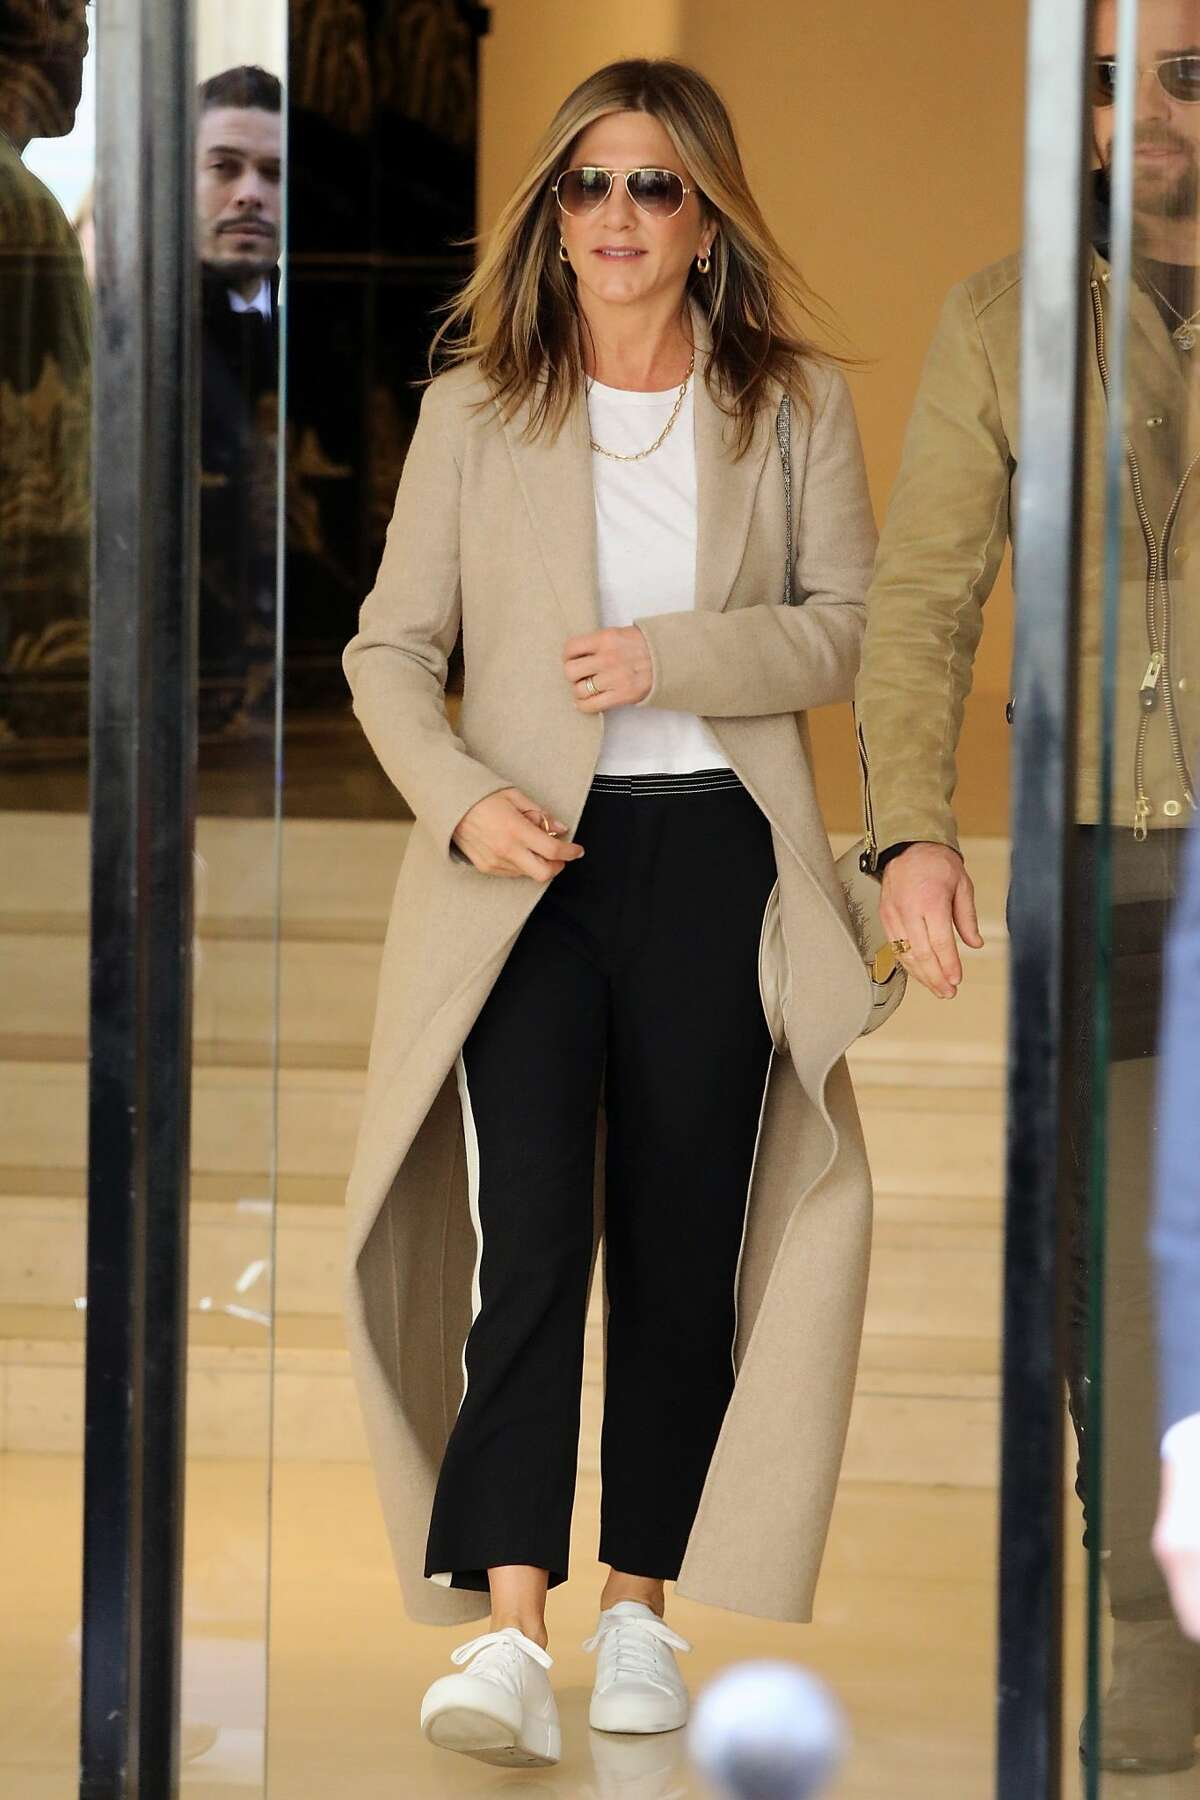 If shopping is your exercise, then dress like Jennifer Aniston.